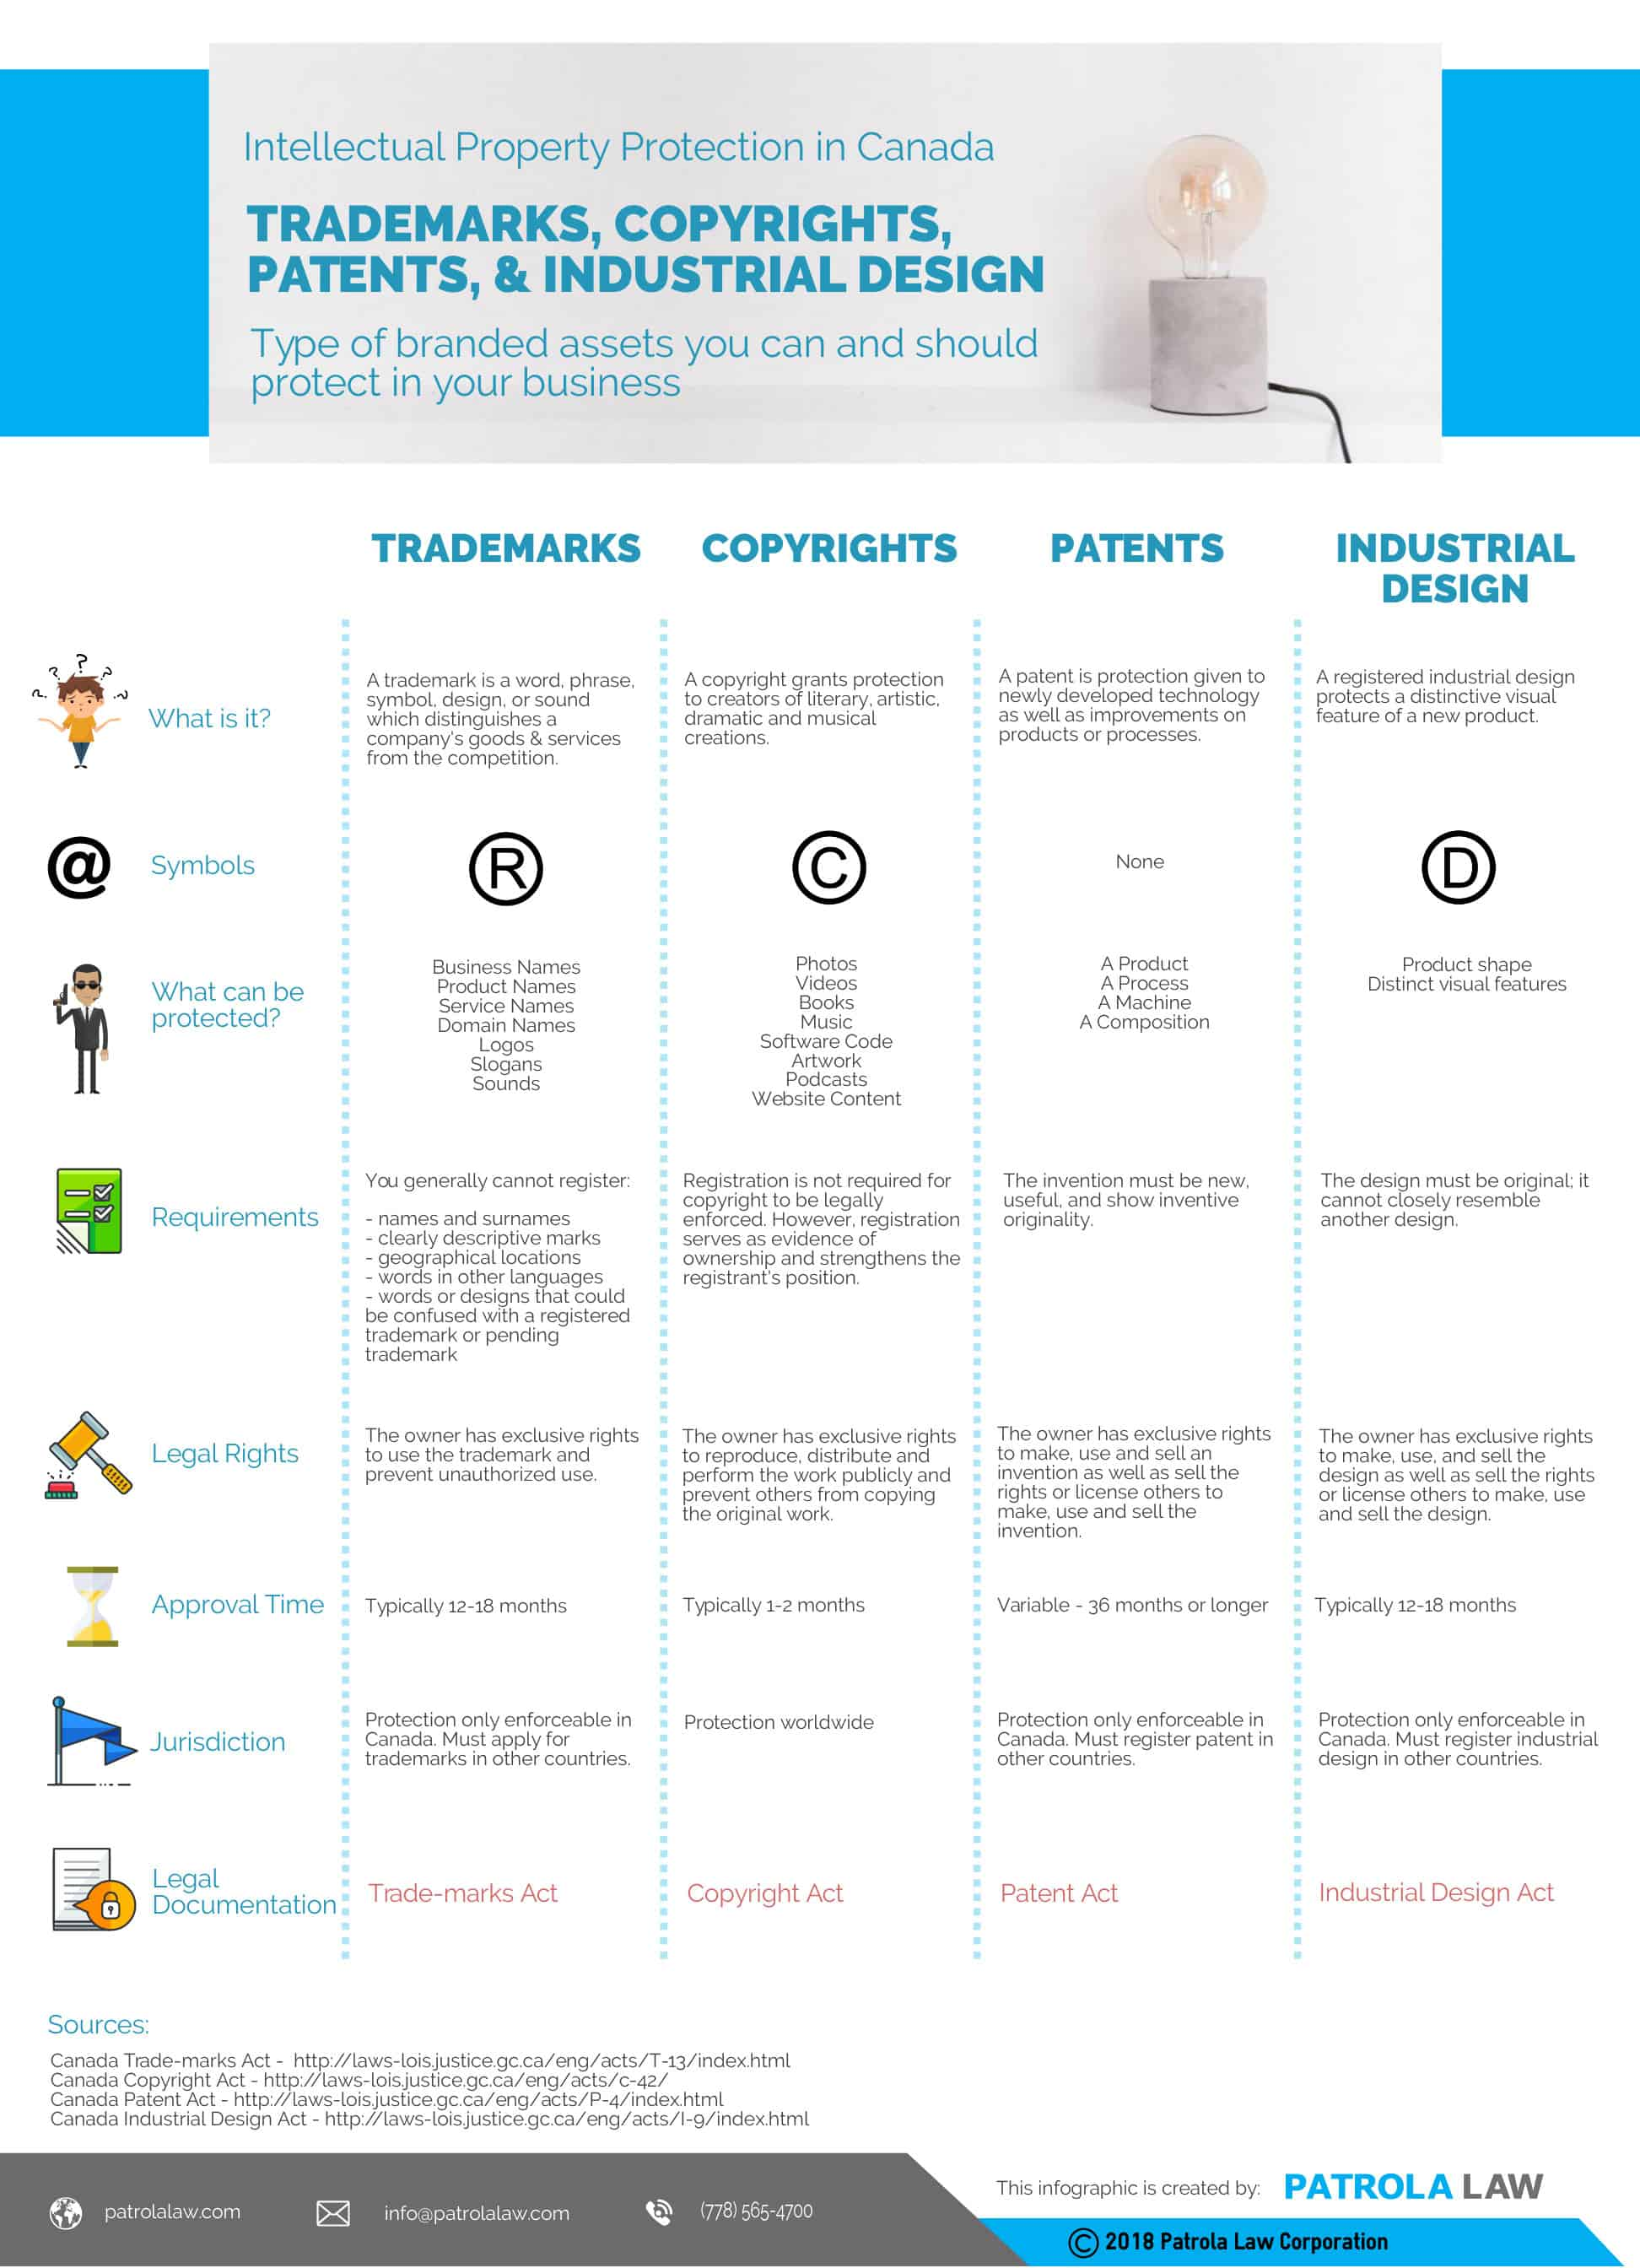 Intellectual Property in Canada Infographic